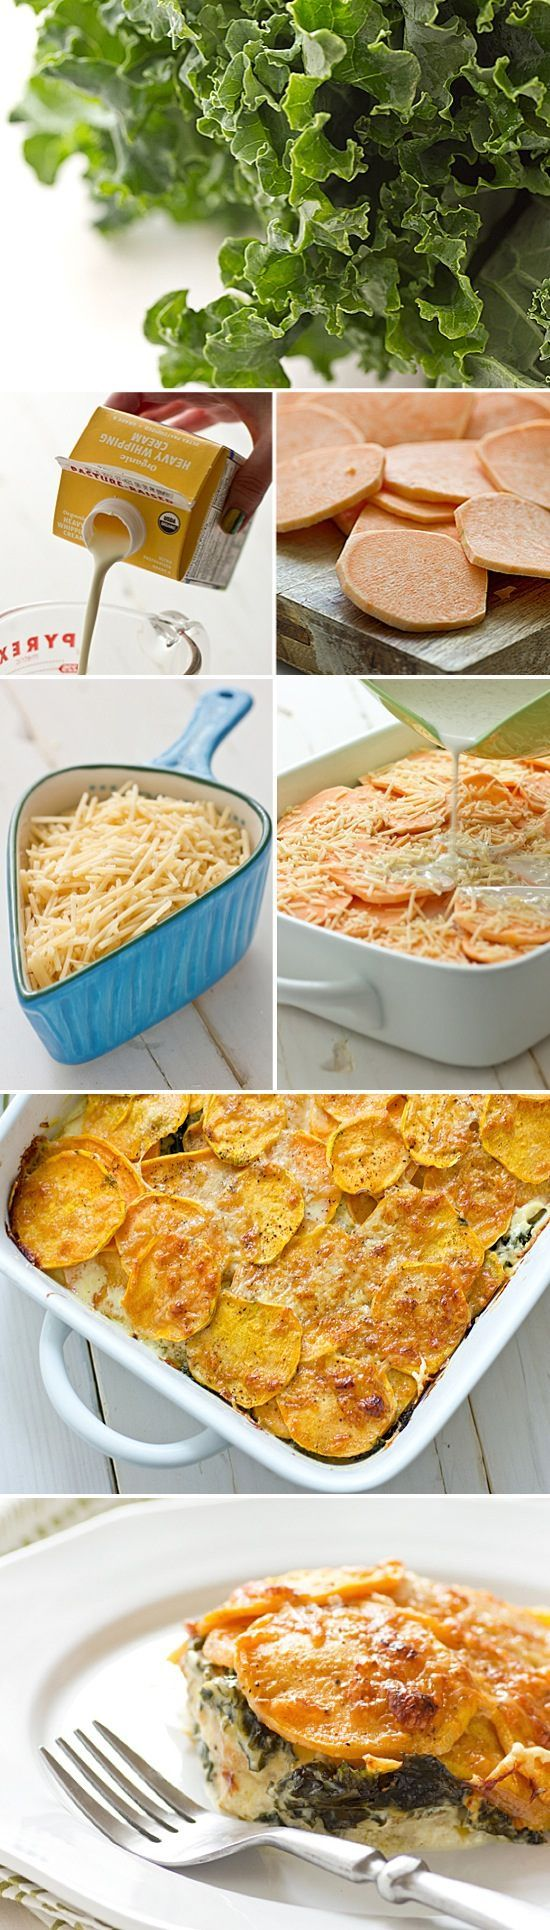 breadcrumbs sweet potato gratin with caramelized onions sweet potato ...